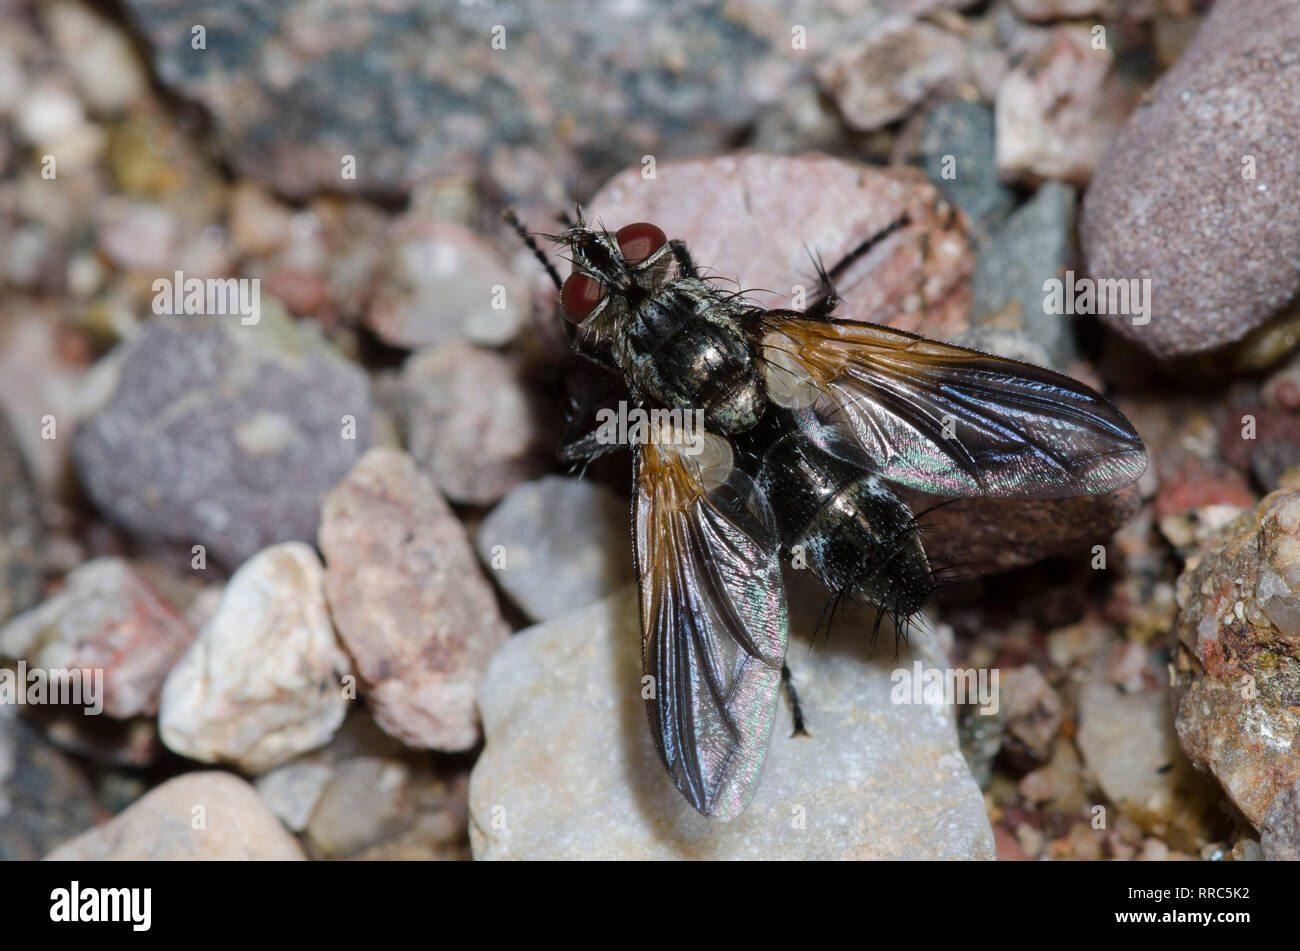 Tachinid Fly, Uramya indita Stock Photo